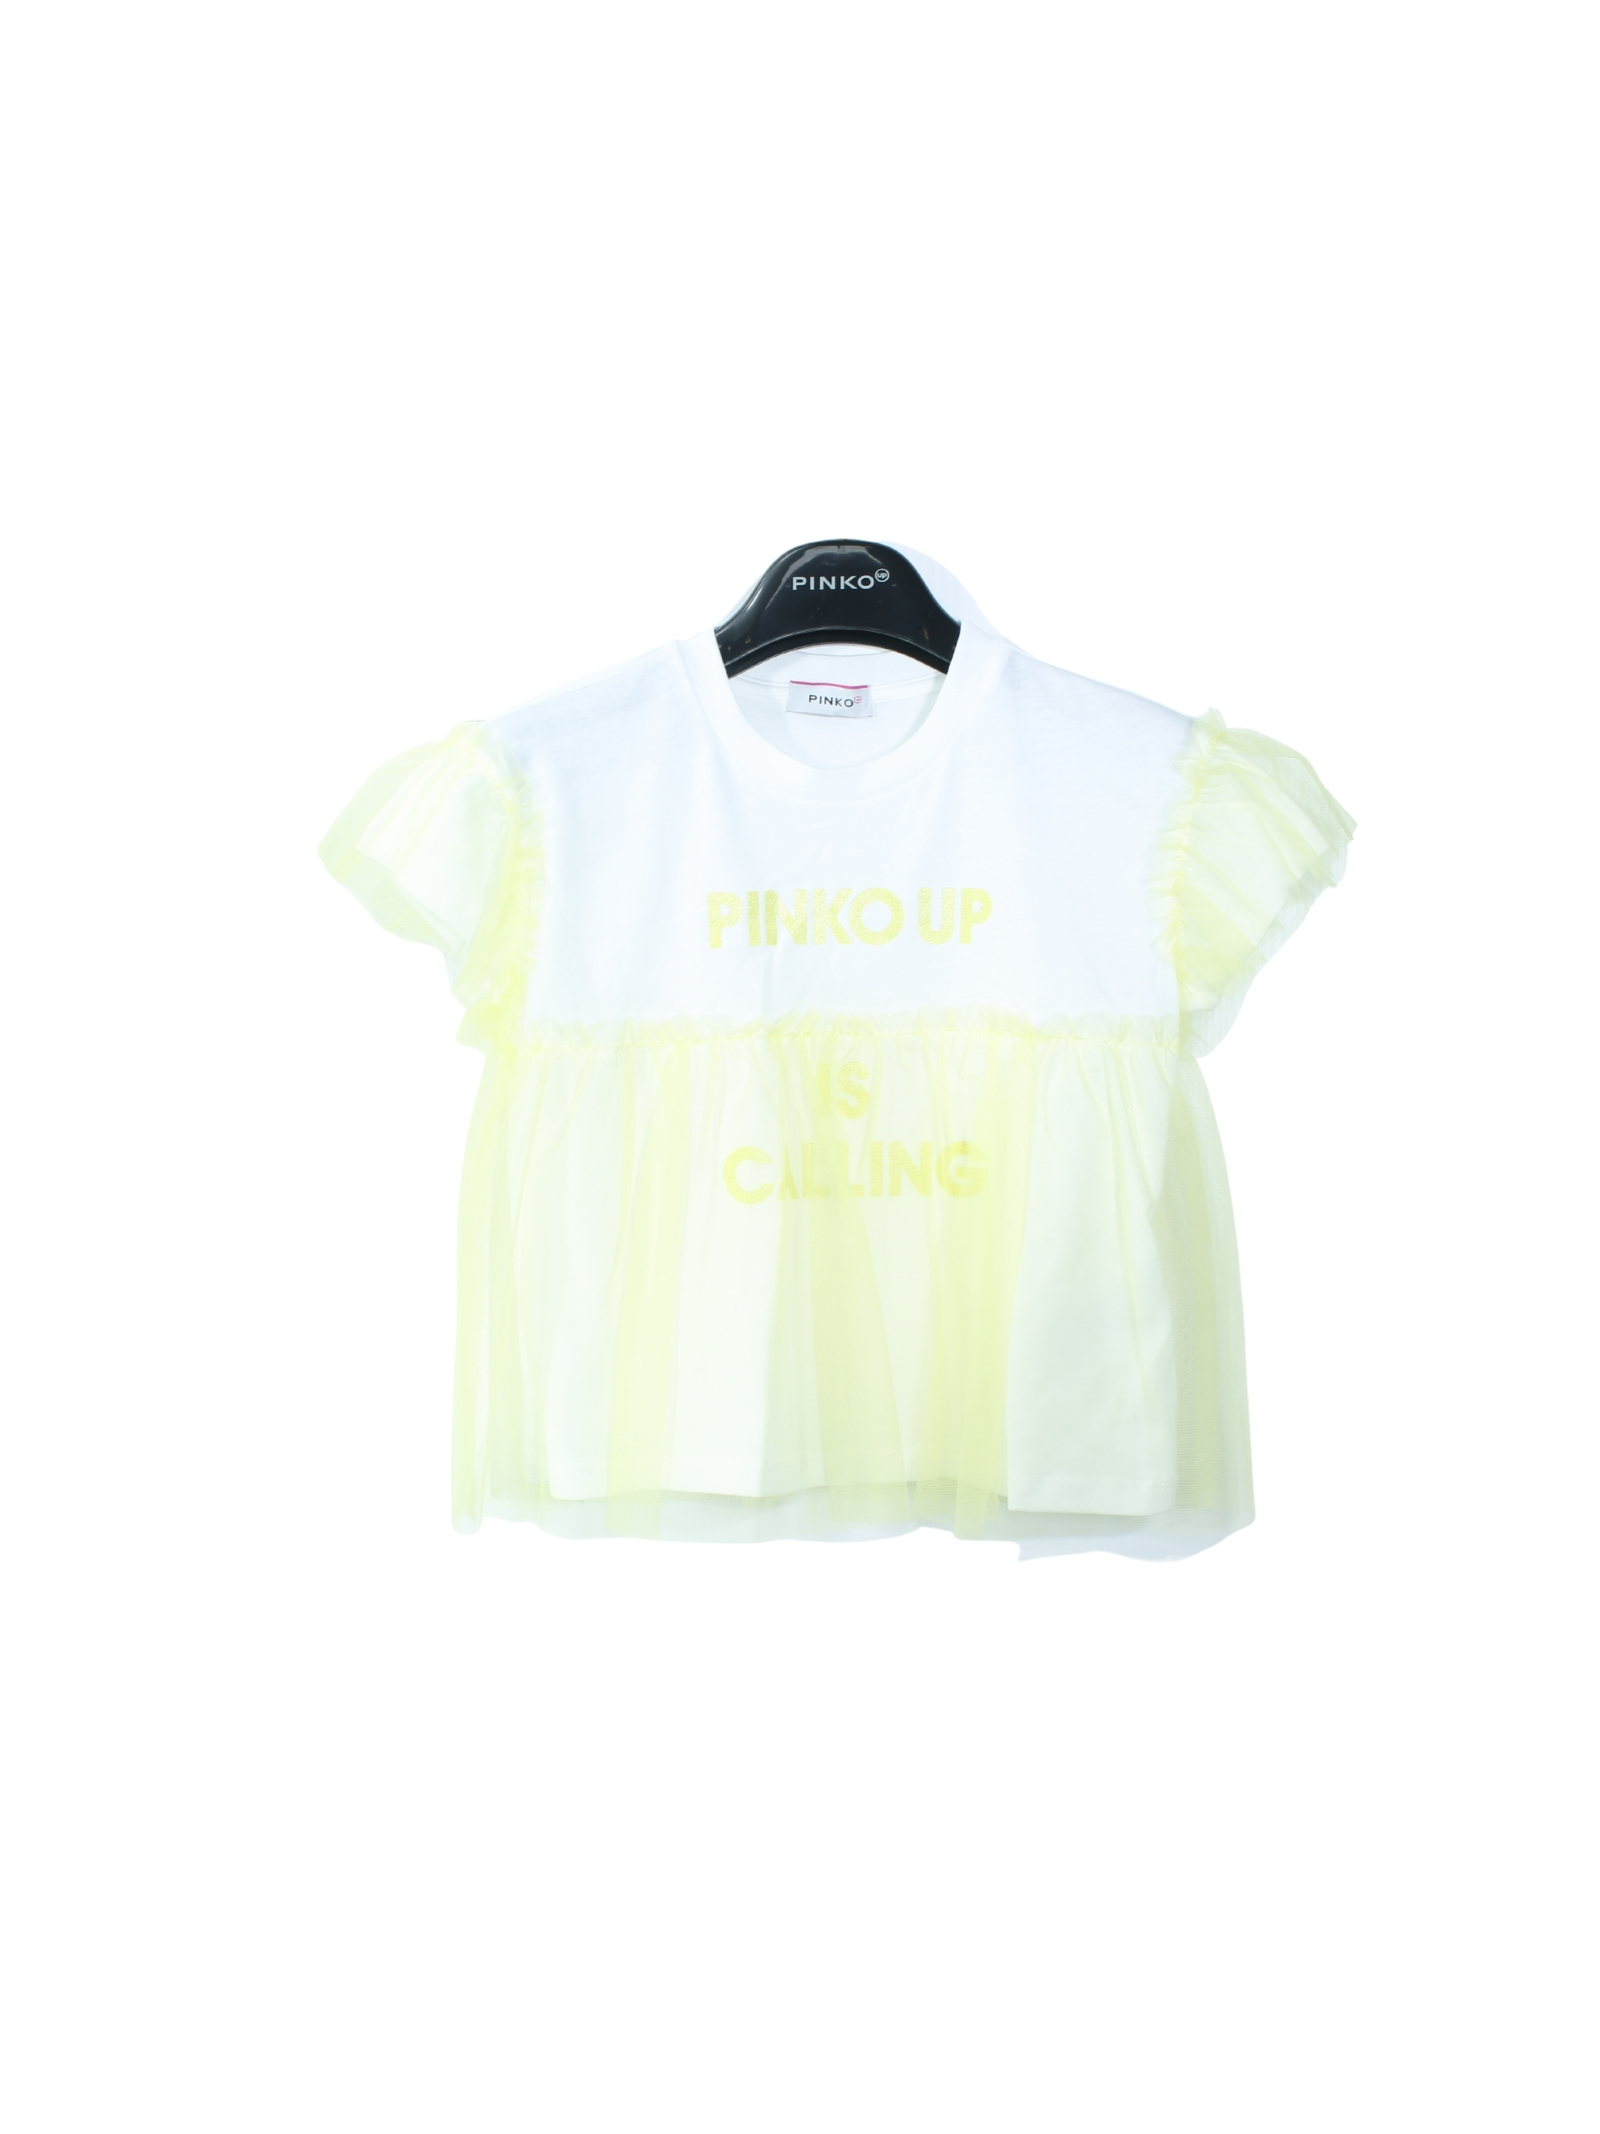 T-shirt Bambina Pinko Tulle PINKO UP | T-shirt | 027766020